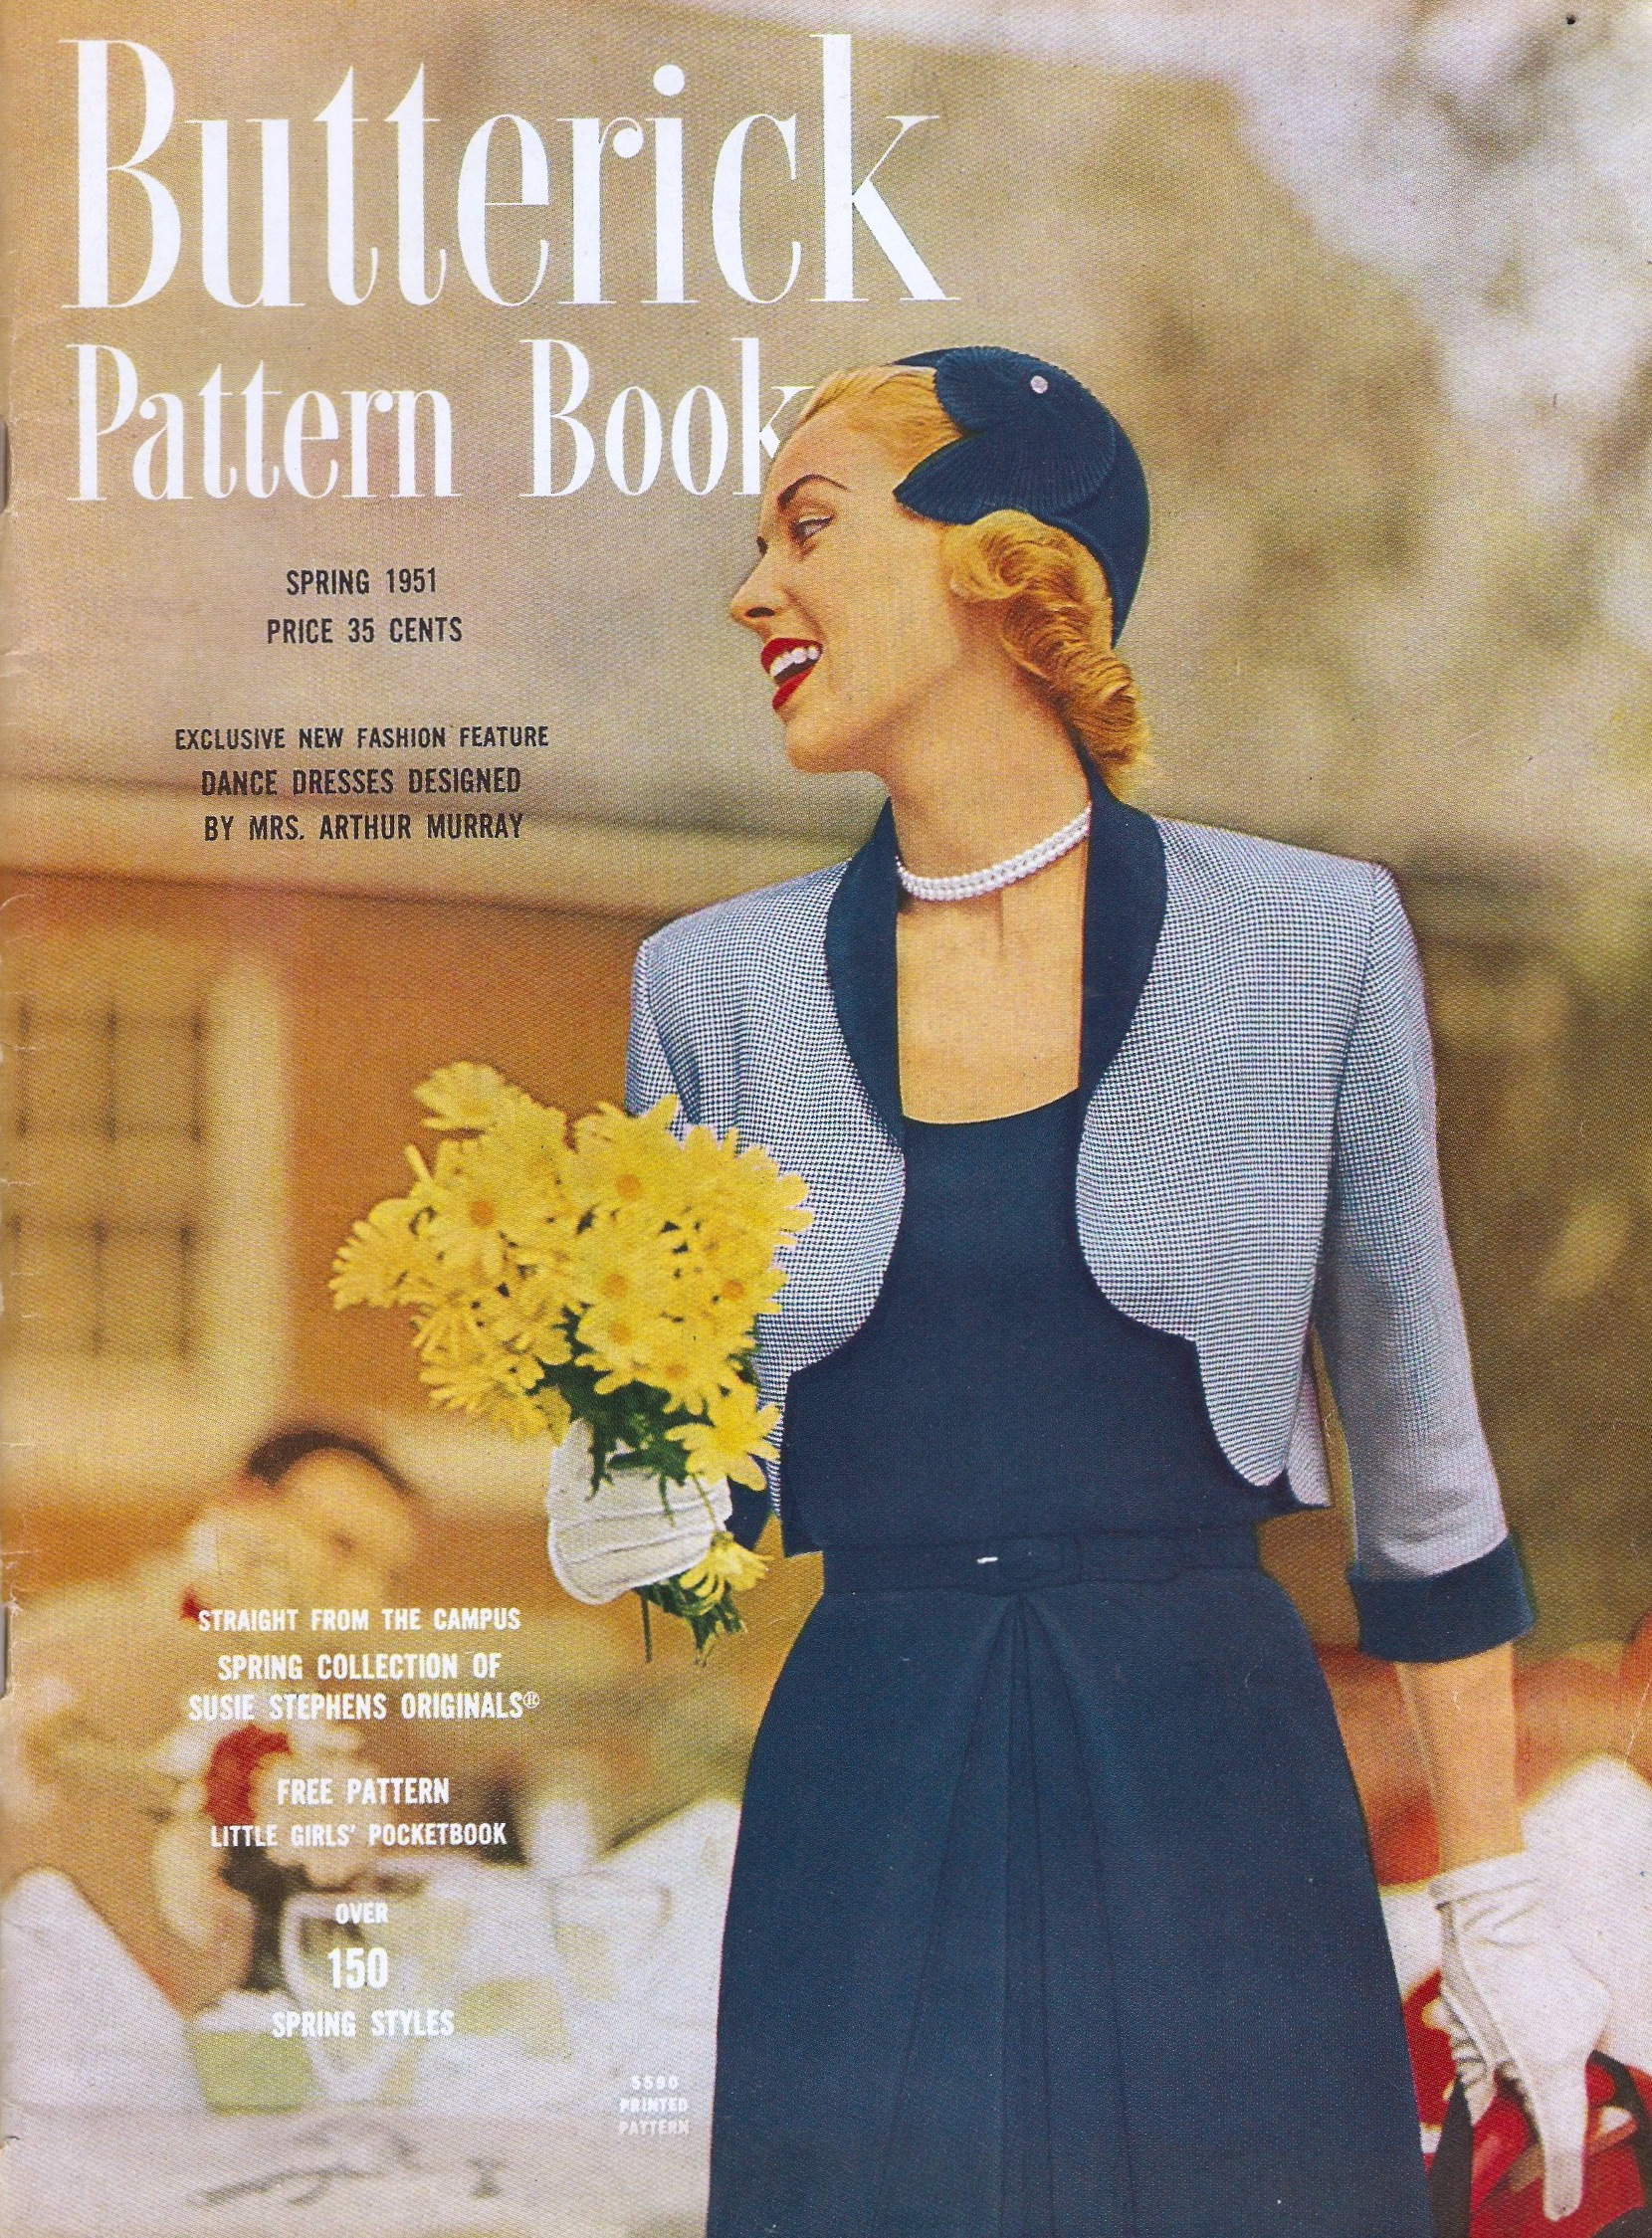 Butterick Pattern Book Spring 1951